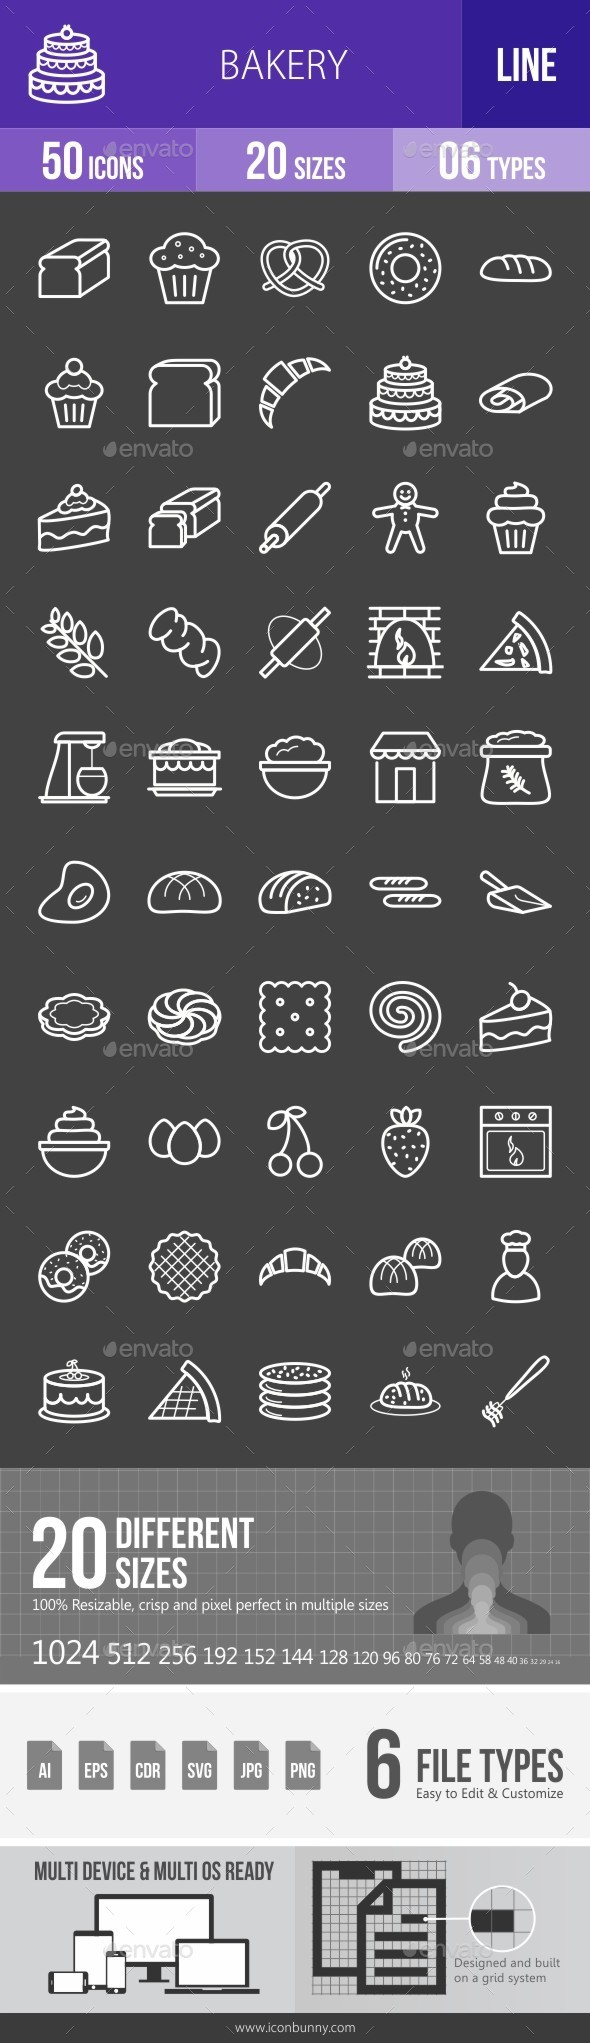 Bakery Line Inverted Icons - Icons